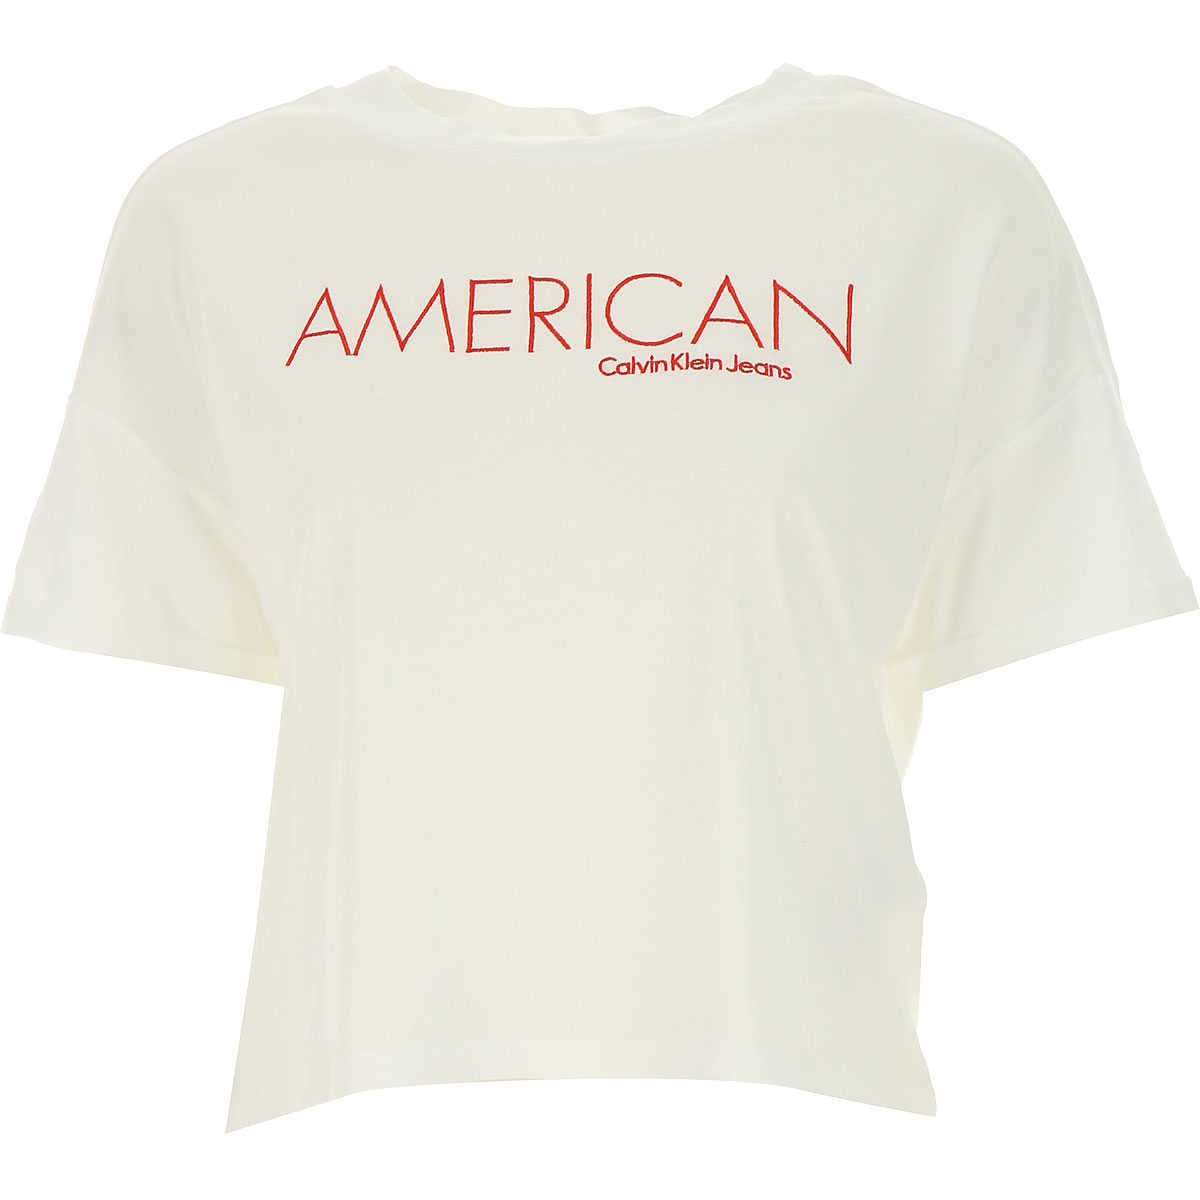 Calvin Klein T-Shirt for Women in Outlet White Canada - GOOFASH - Womens T-SHIRTS